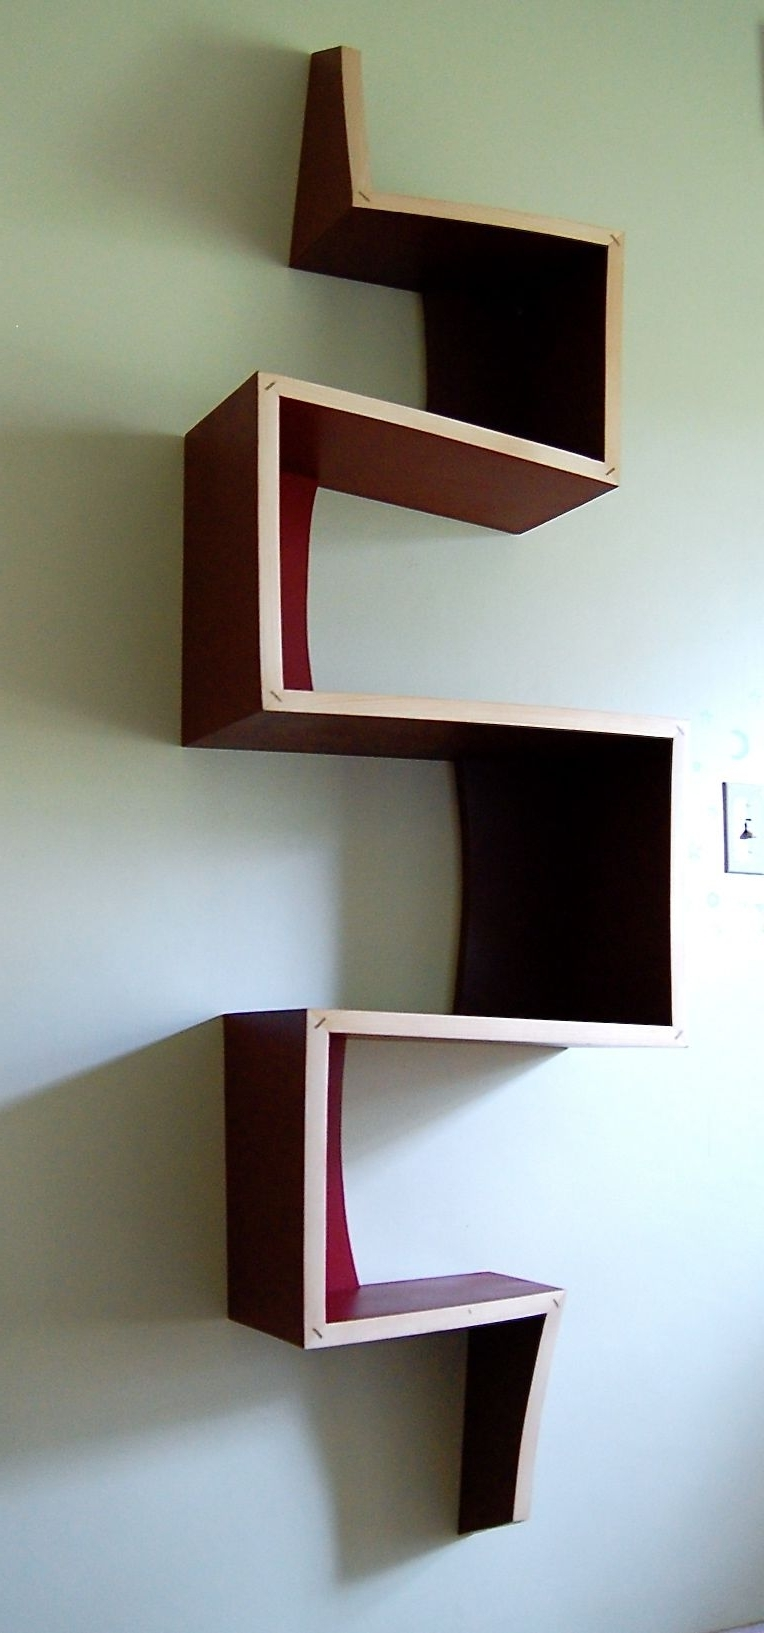 Trendy Zig Zag Bookcases With Regard To 56 Zig Zag Book Shelf, Book Display Shelf Zig Zag Diy Zig Zag (View 11 of 15)